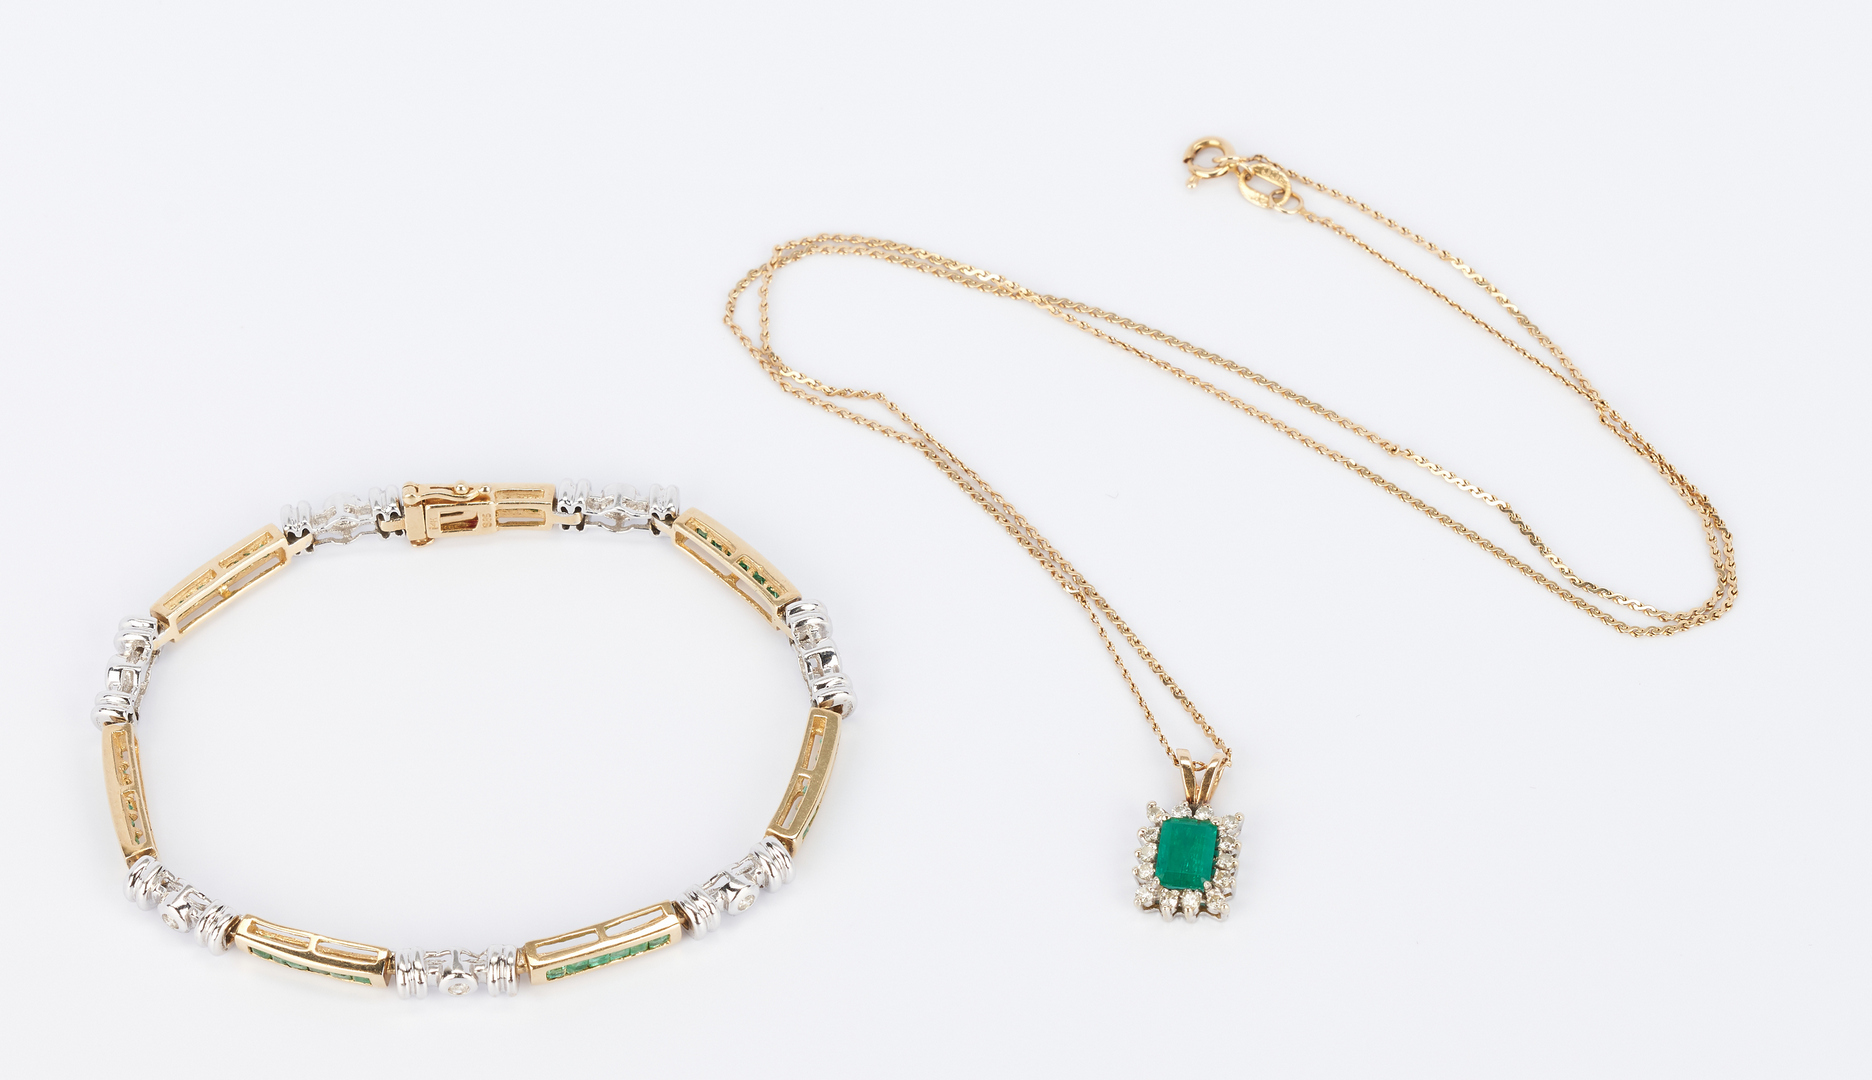 Lot 769: Ladies Diamond and Emerald Bracelet & Pendant w/ Necklace, 3 items